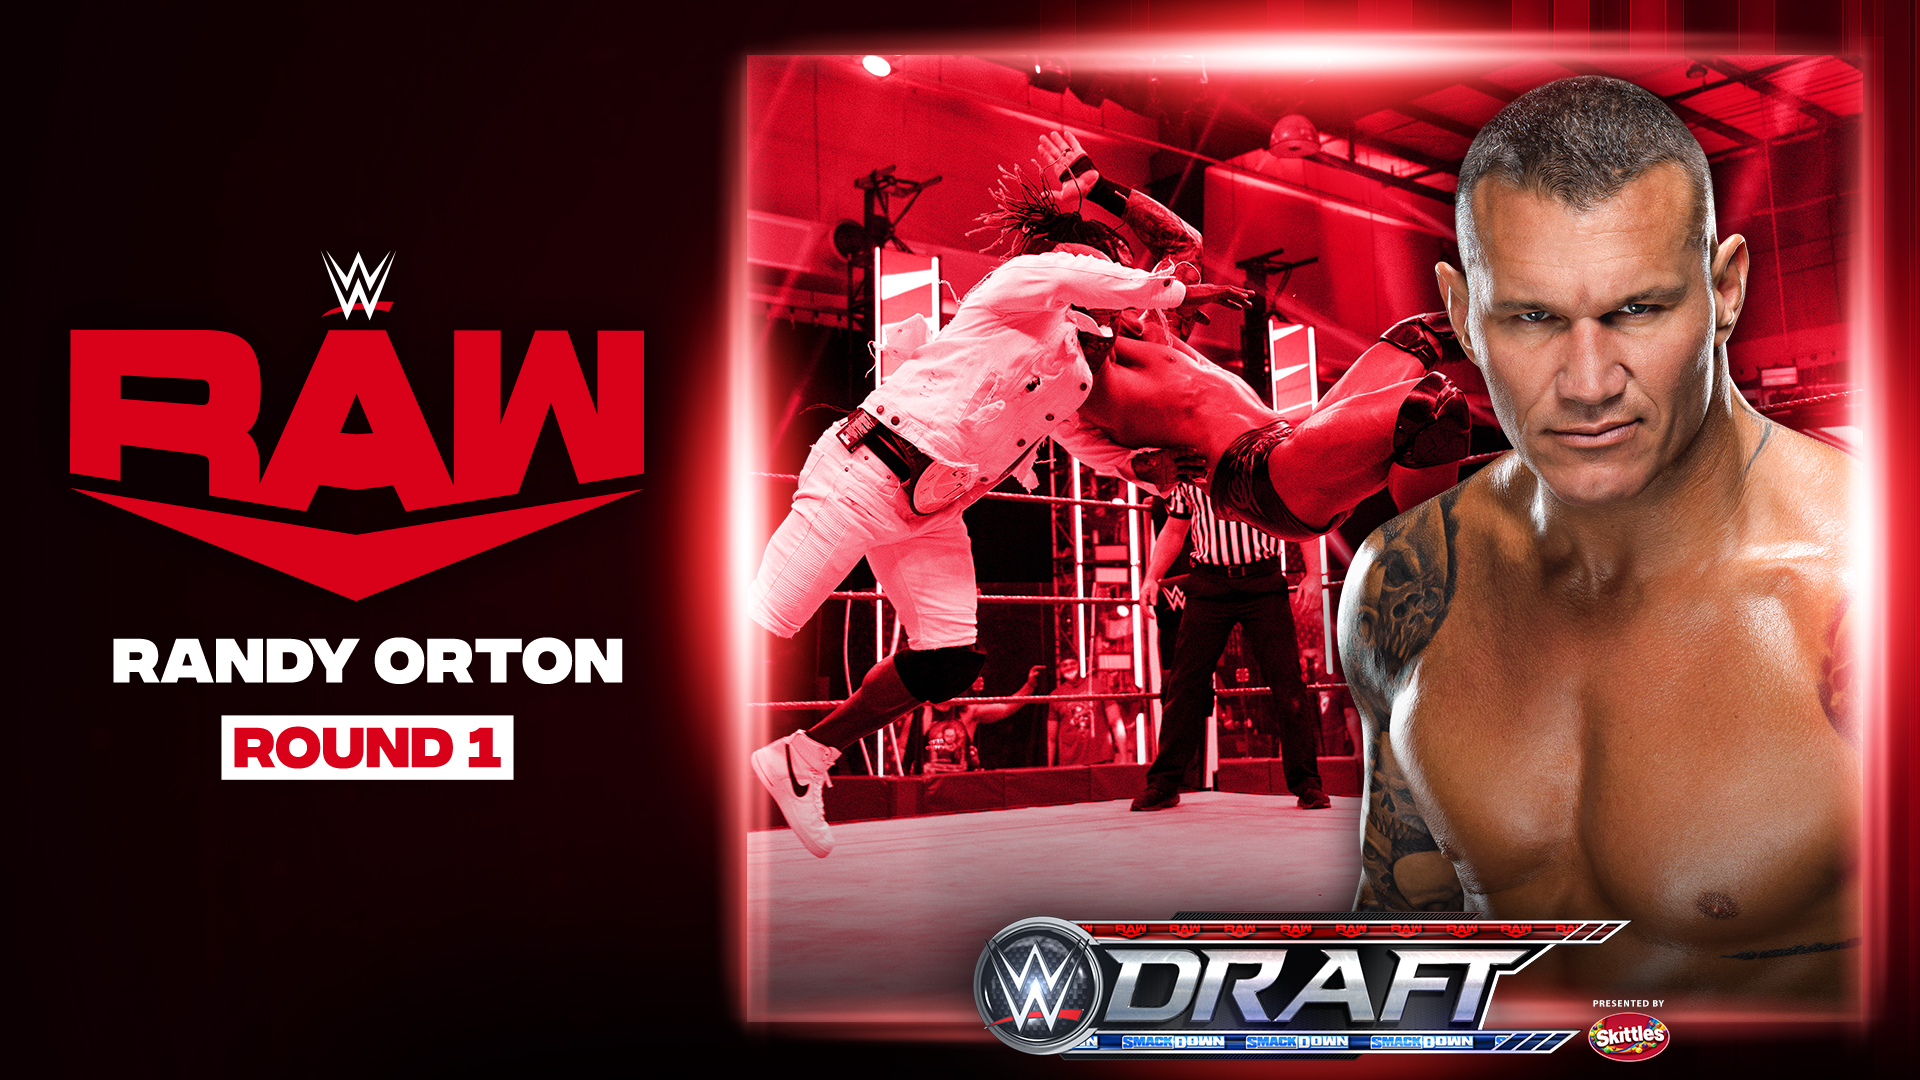 Randy Orton drafted to WWE RAW